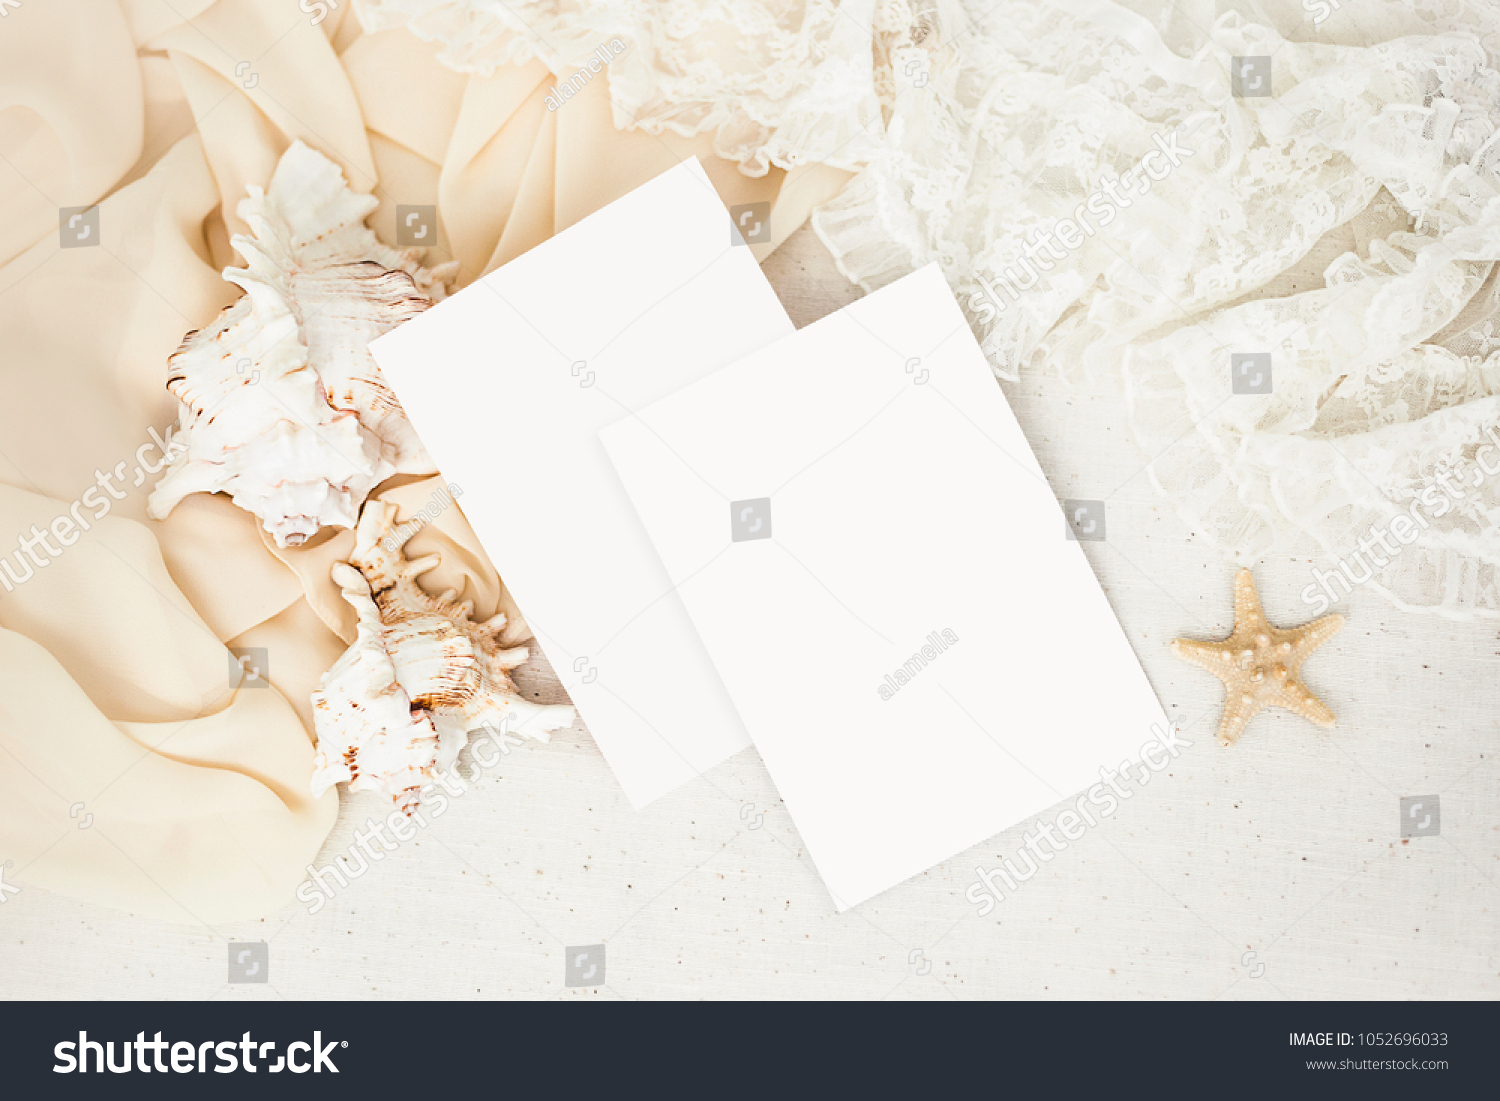 Pastel Mockup Wedding Invitation Greeting Cards Stock Photo (Edit ...